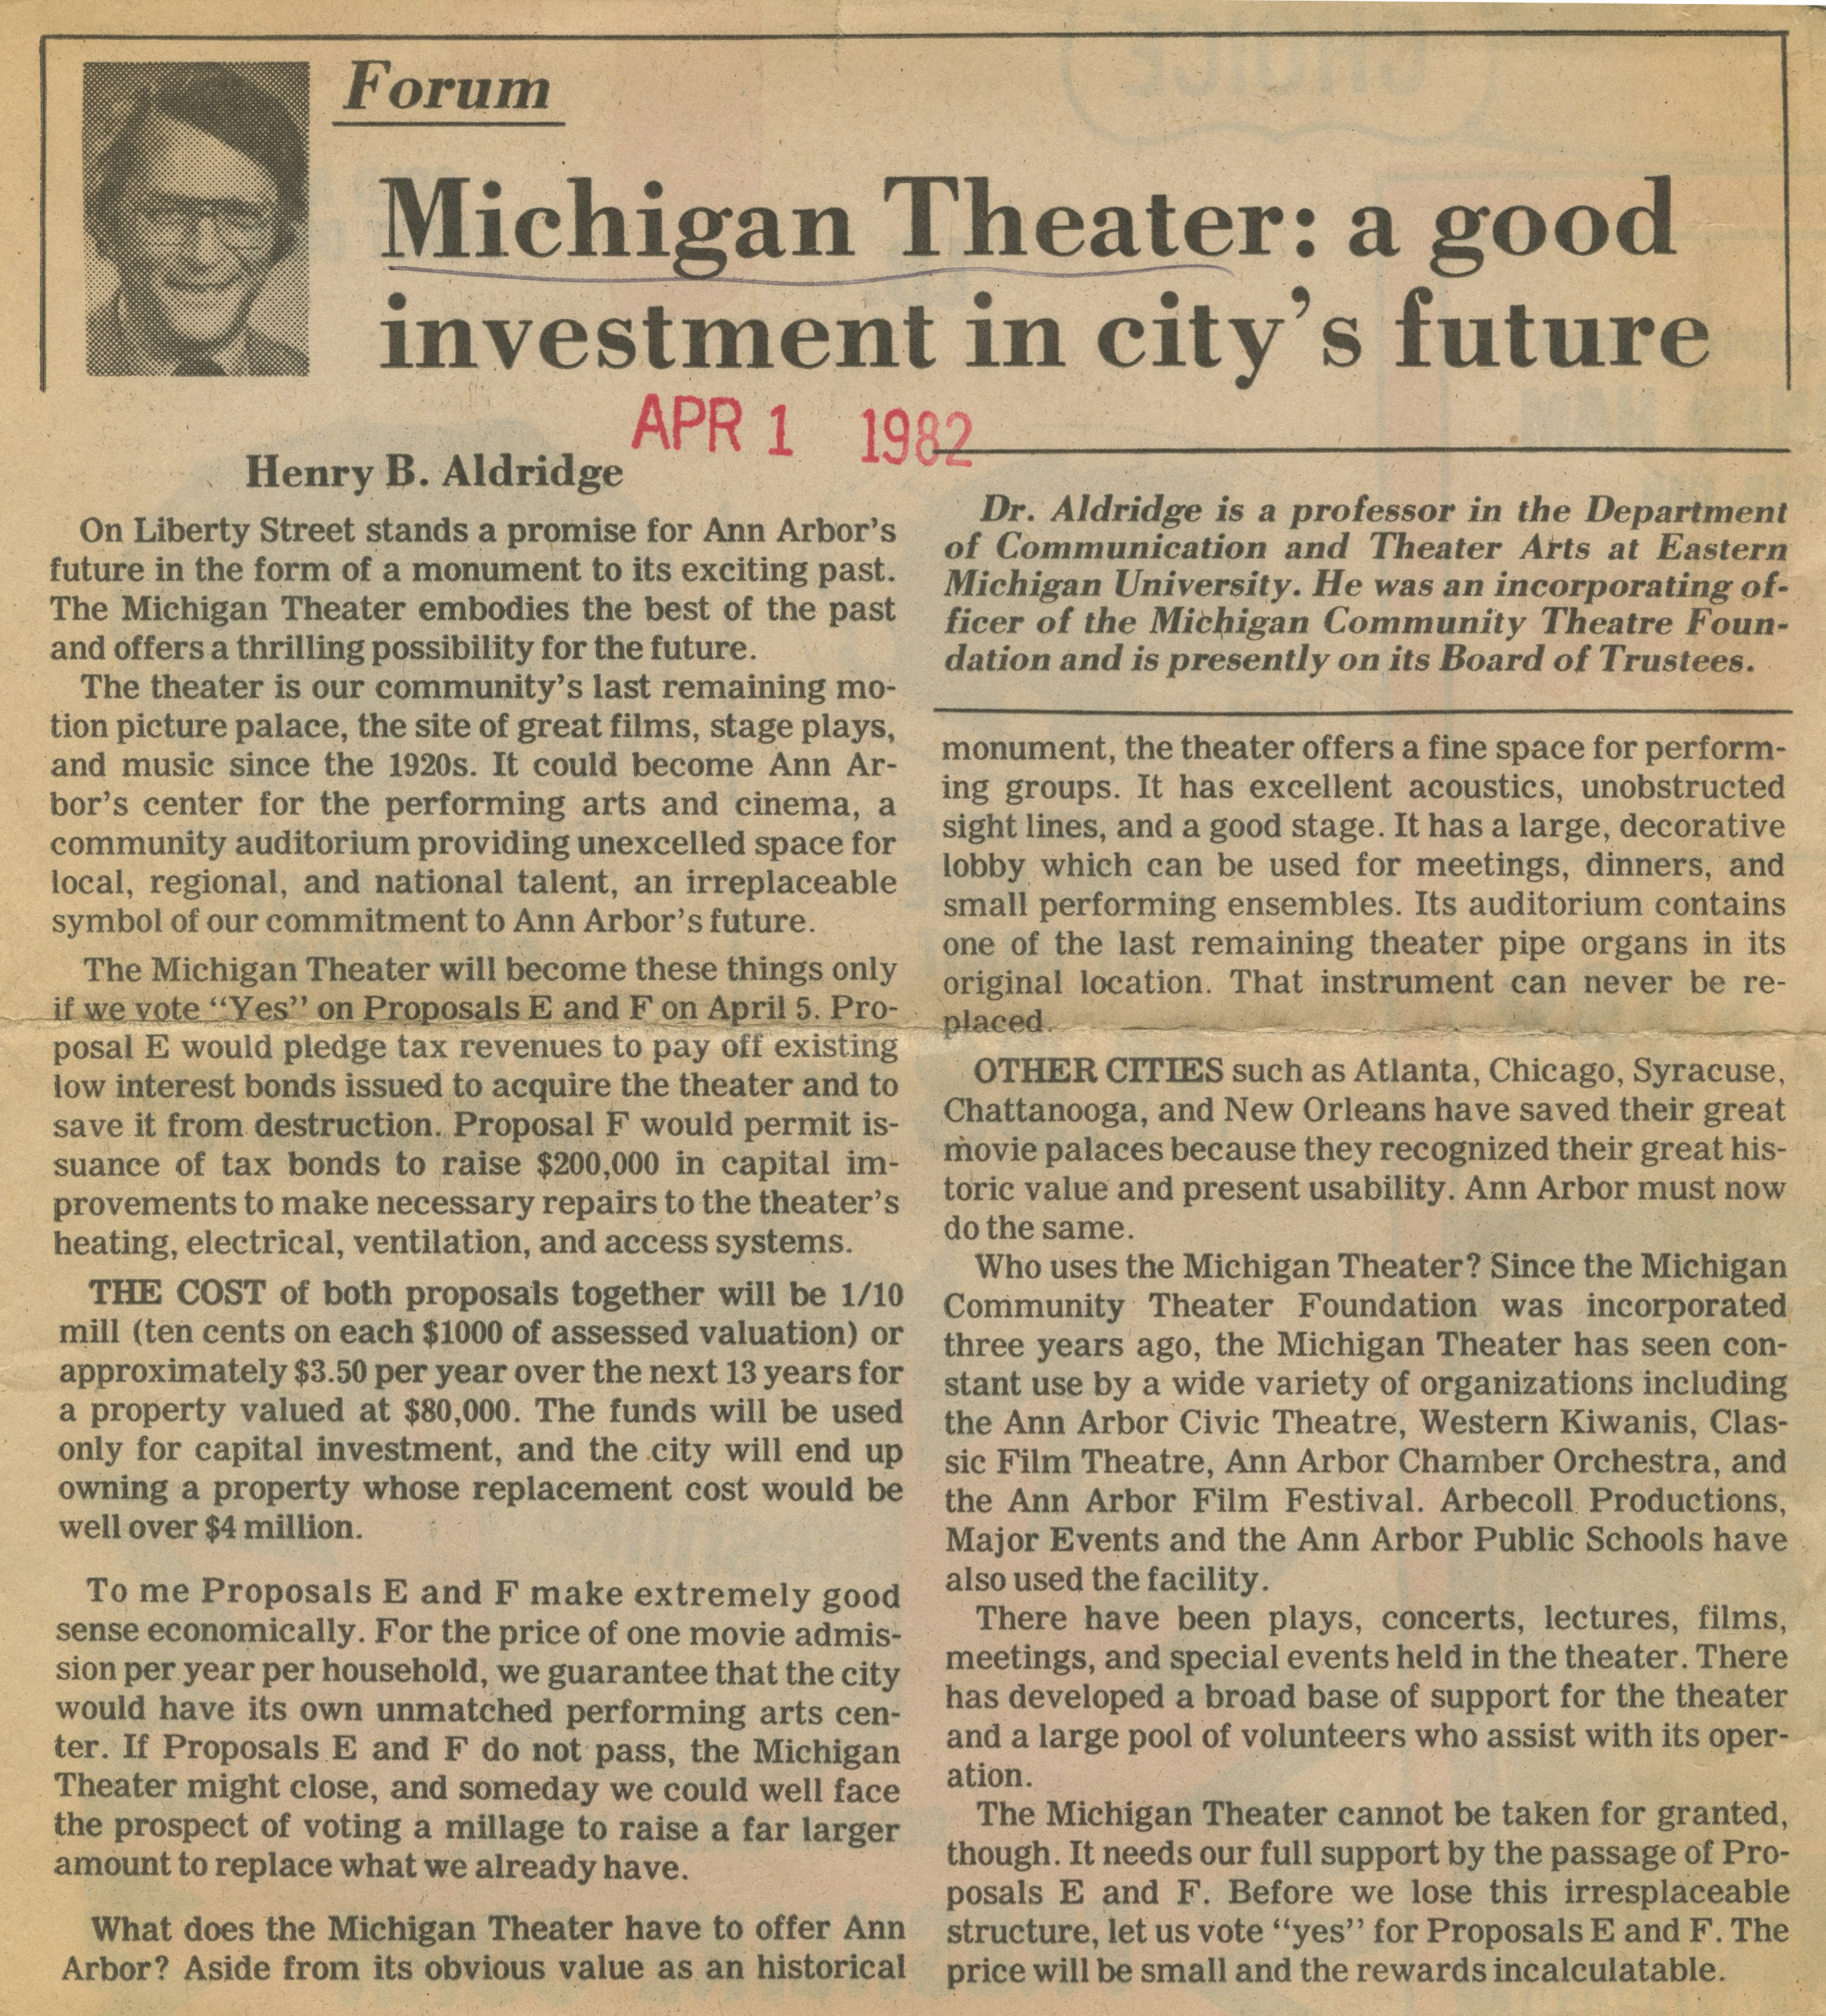 Michigan Theater: A Good Investment In City's Future image